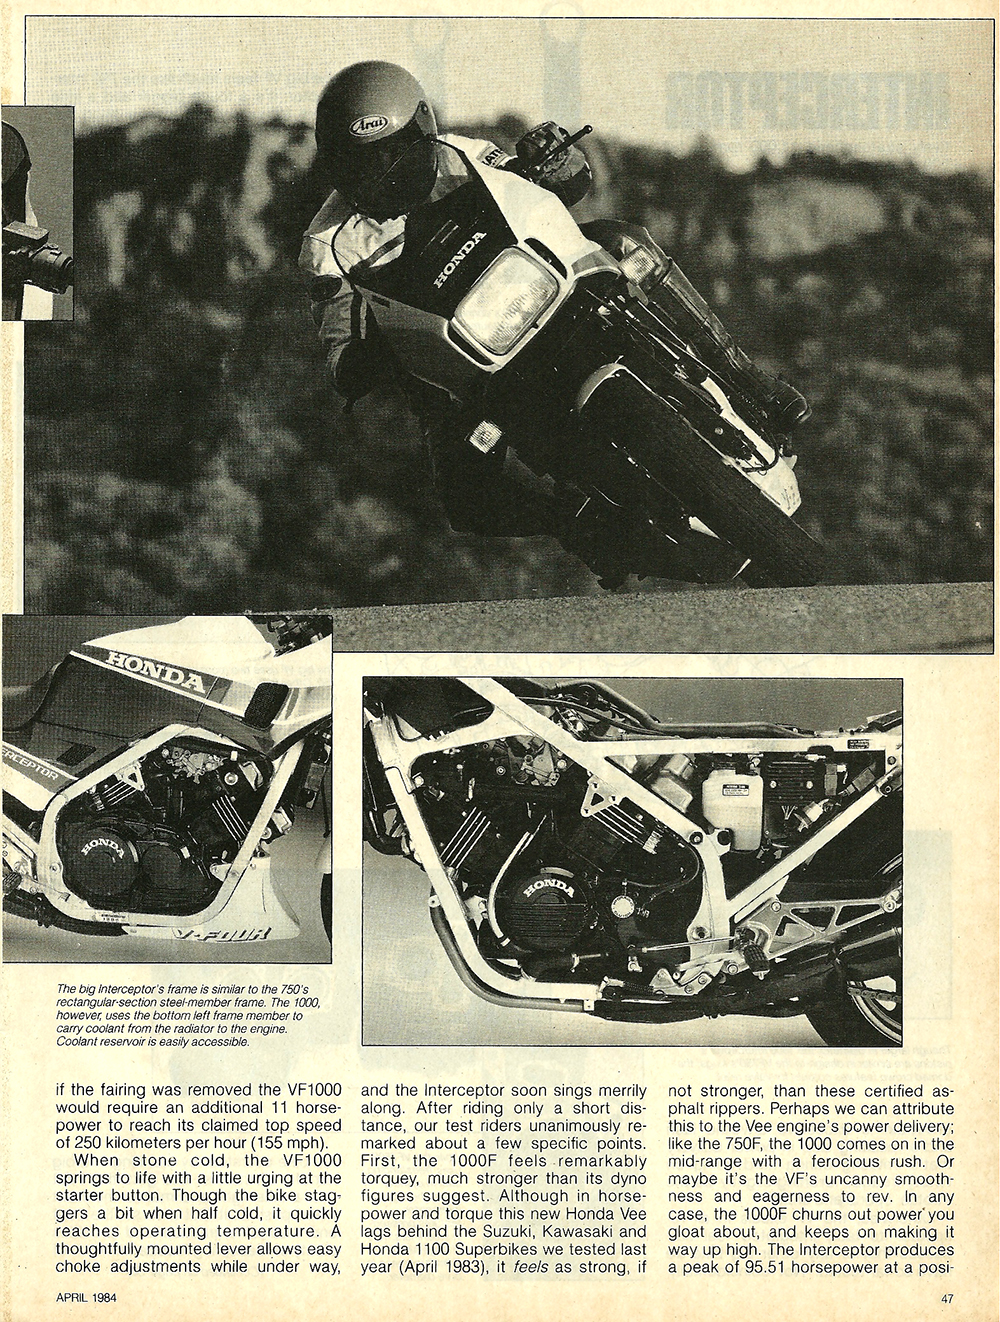 1984 Honda VF1000 Interceptor road test 6.jpg